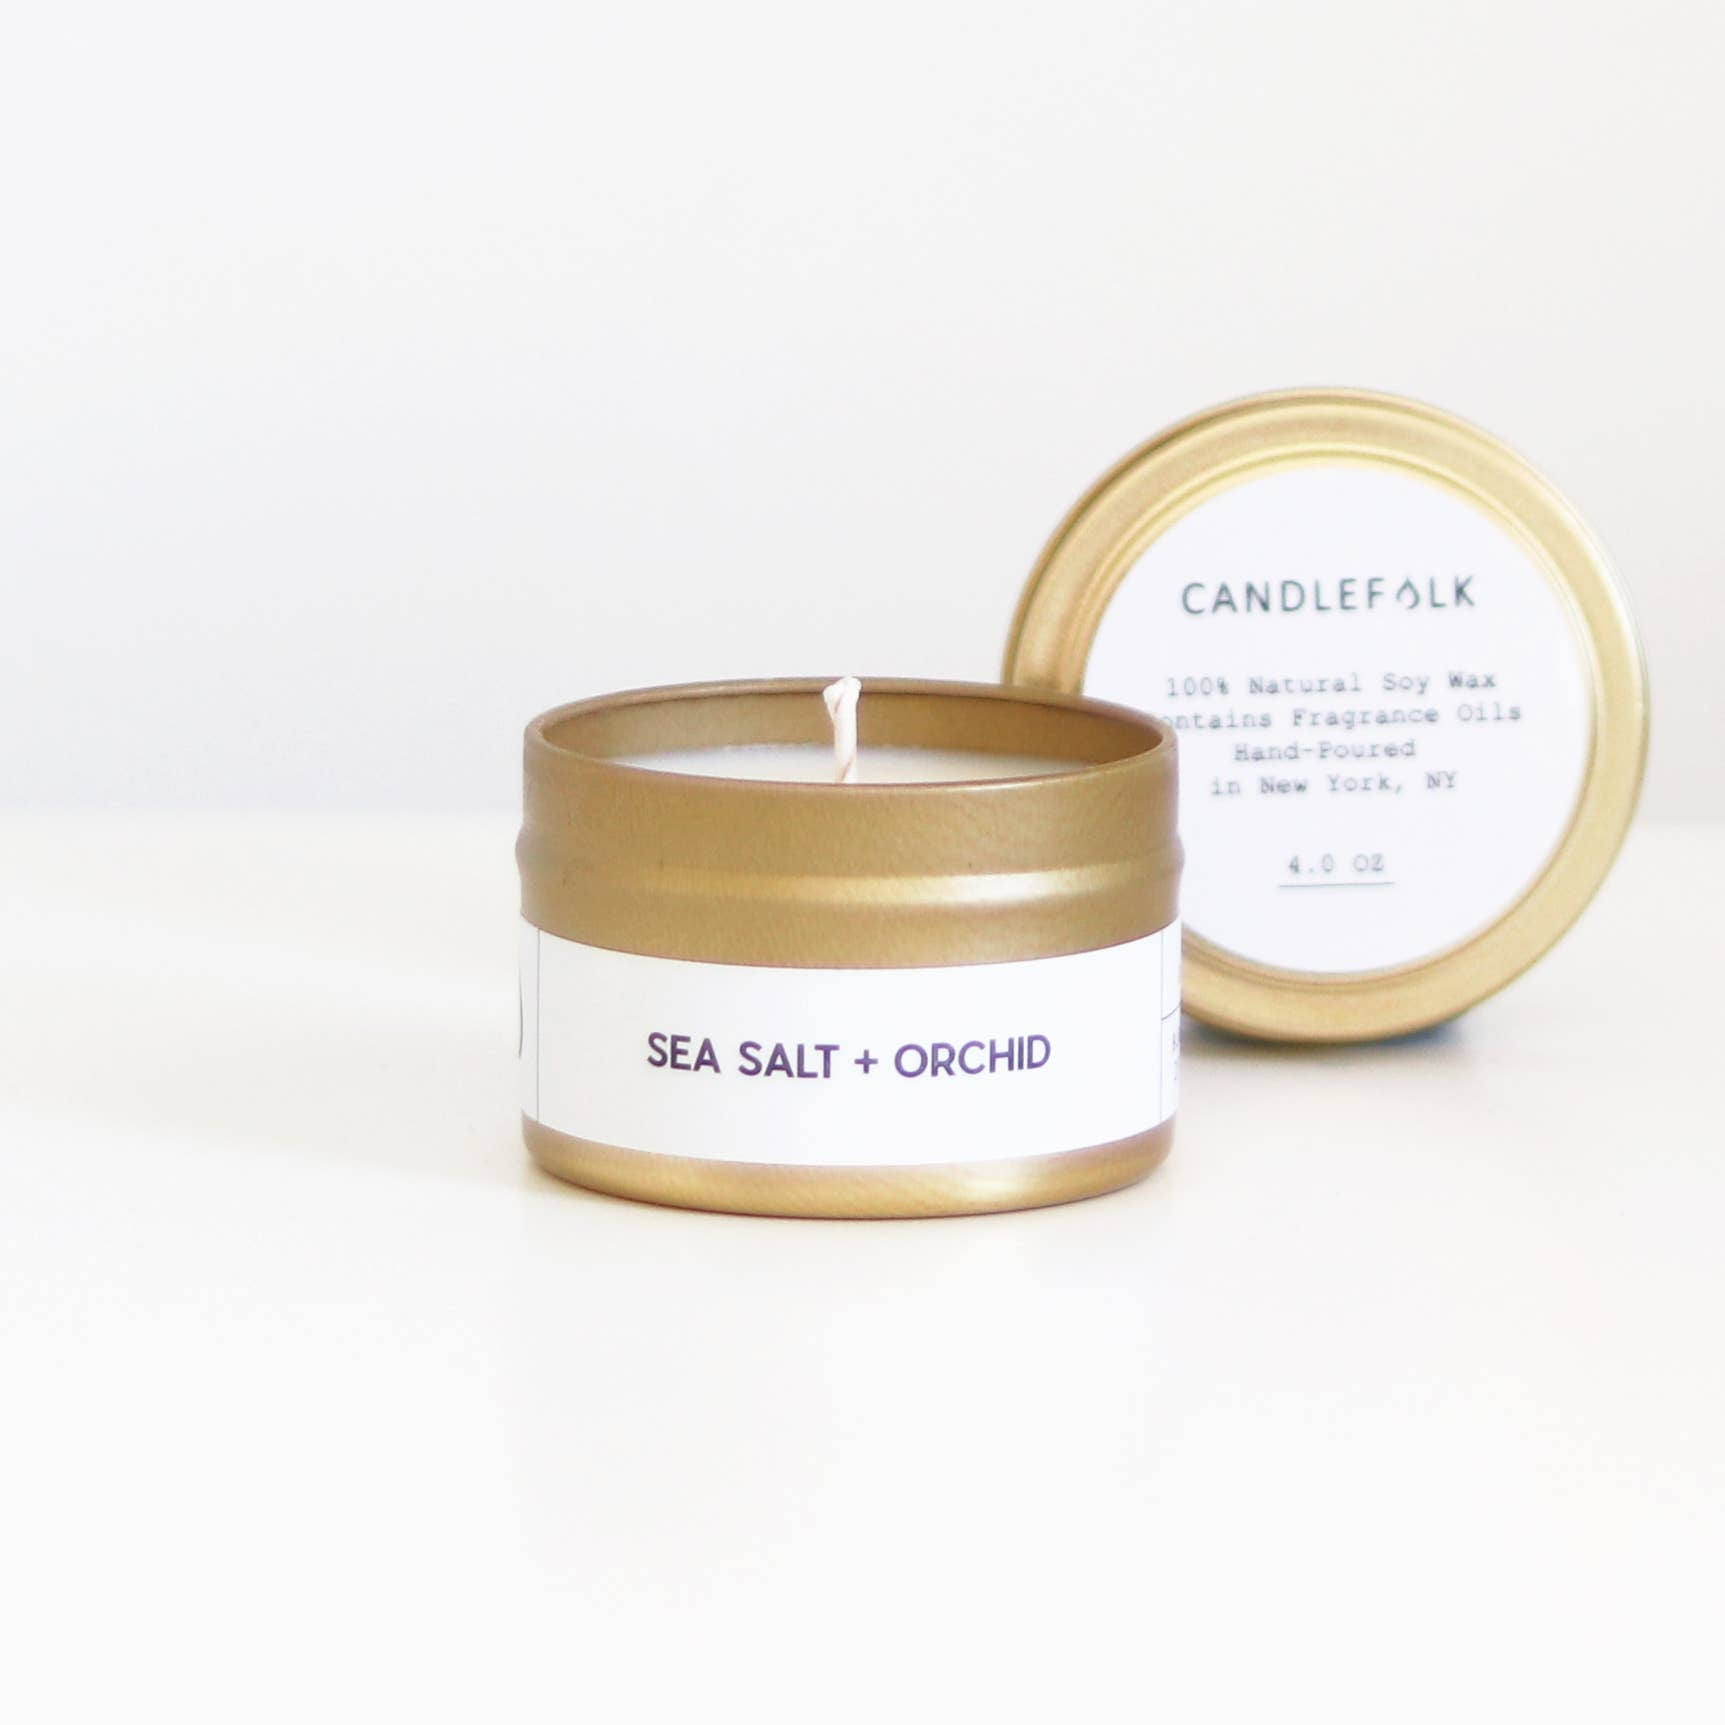 Candlefolk - Sea Salt + Orchid - Gold Travel Candle 4 oz